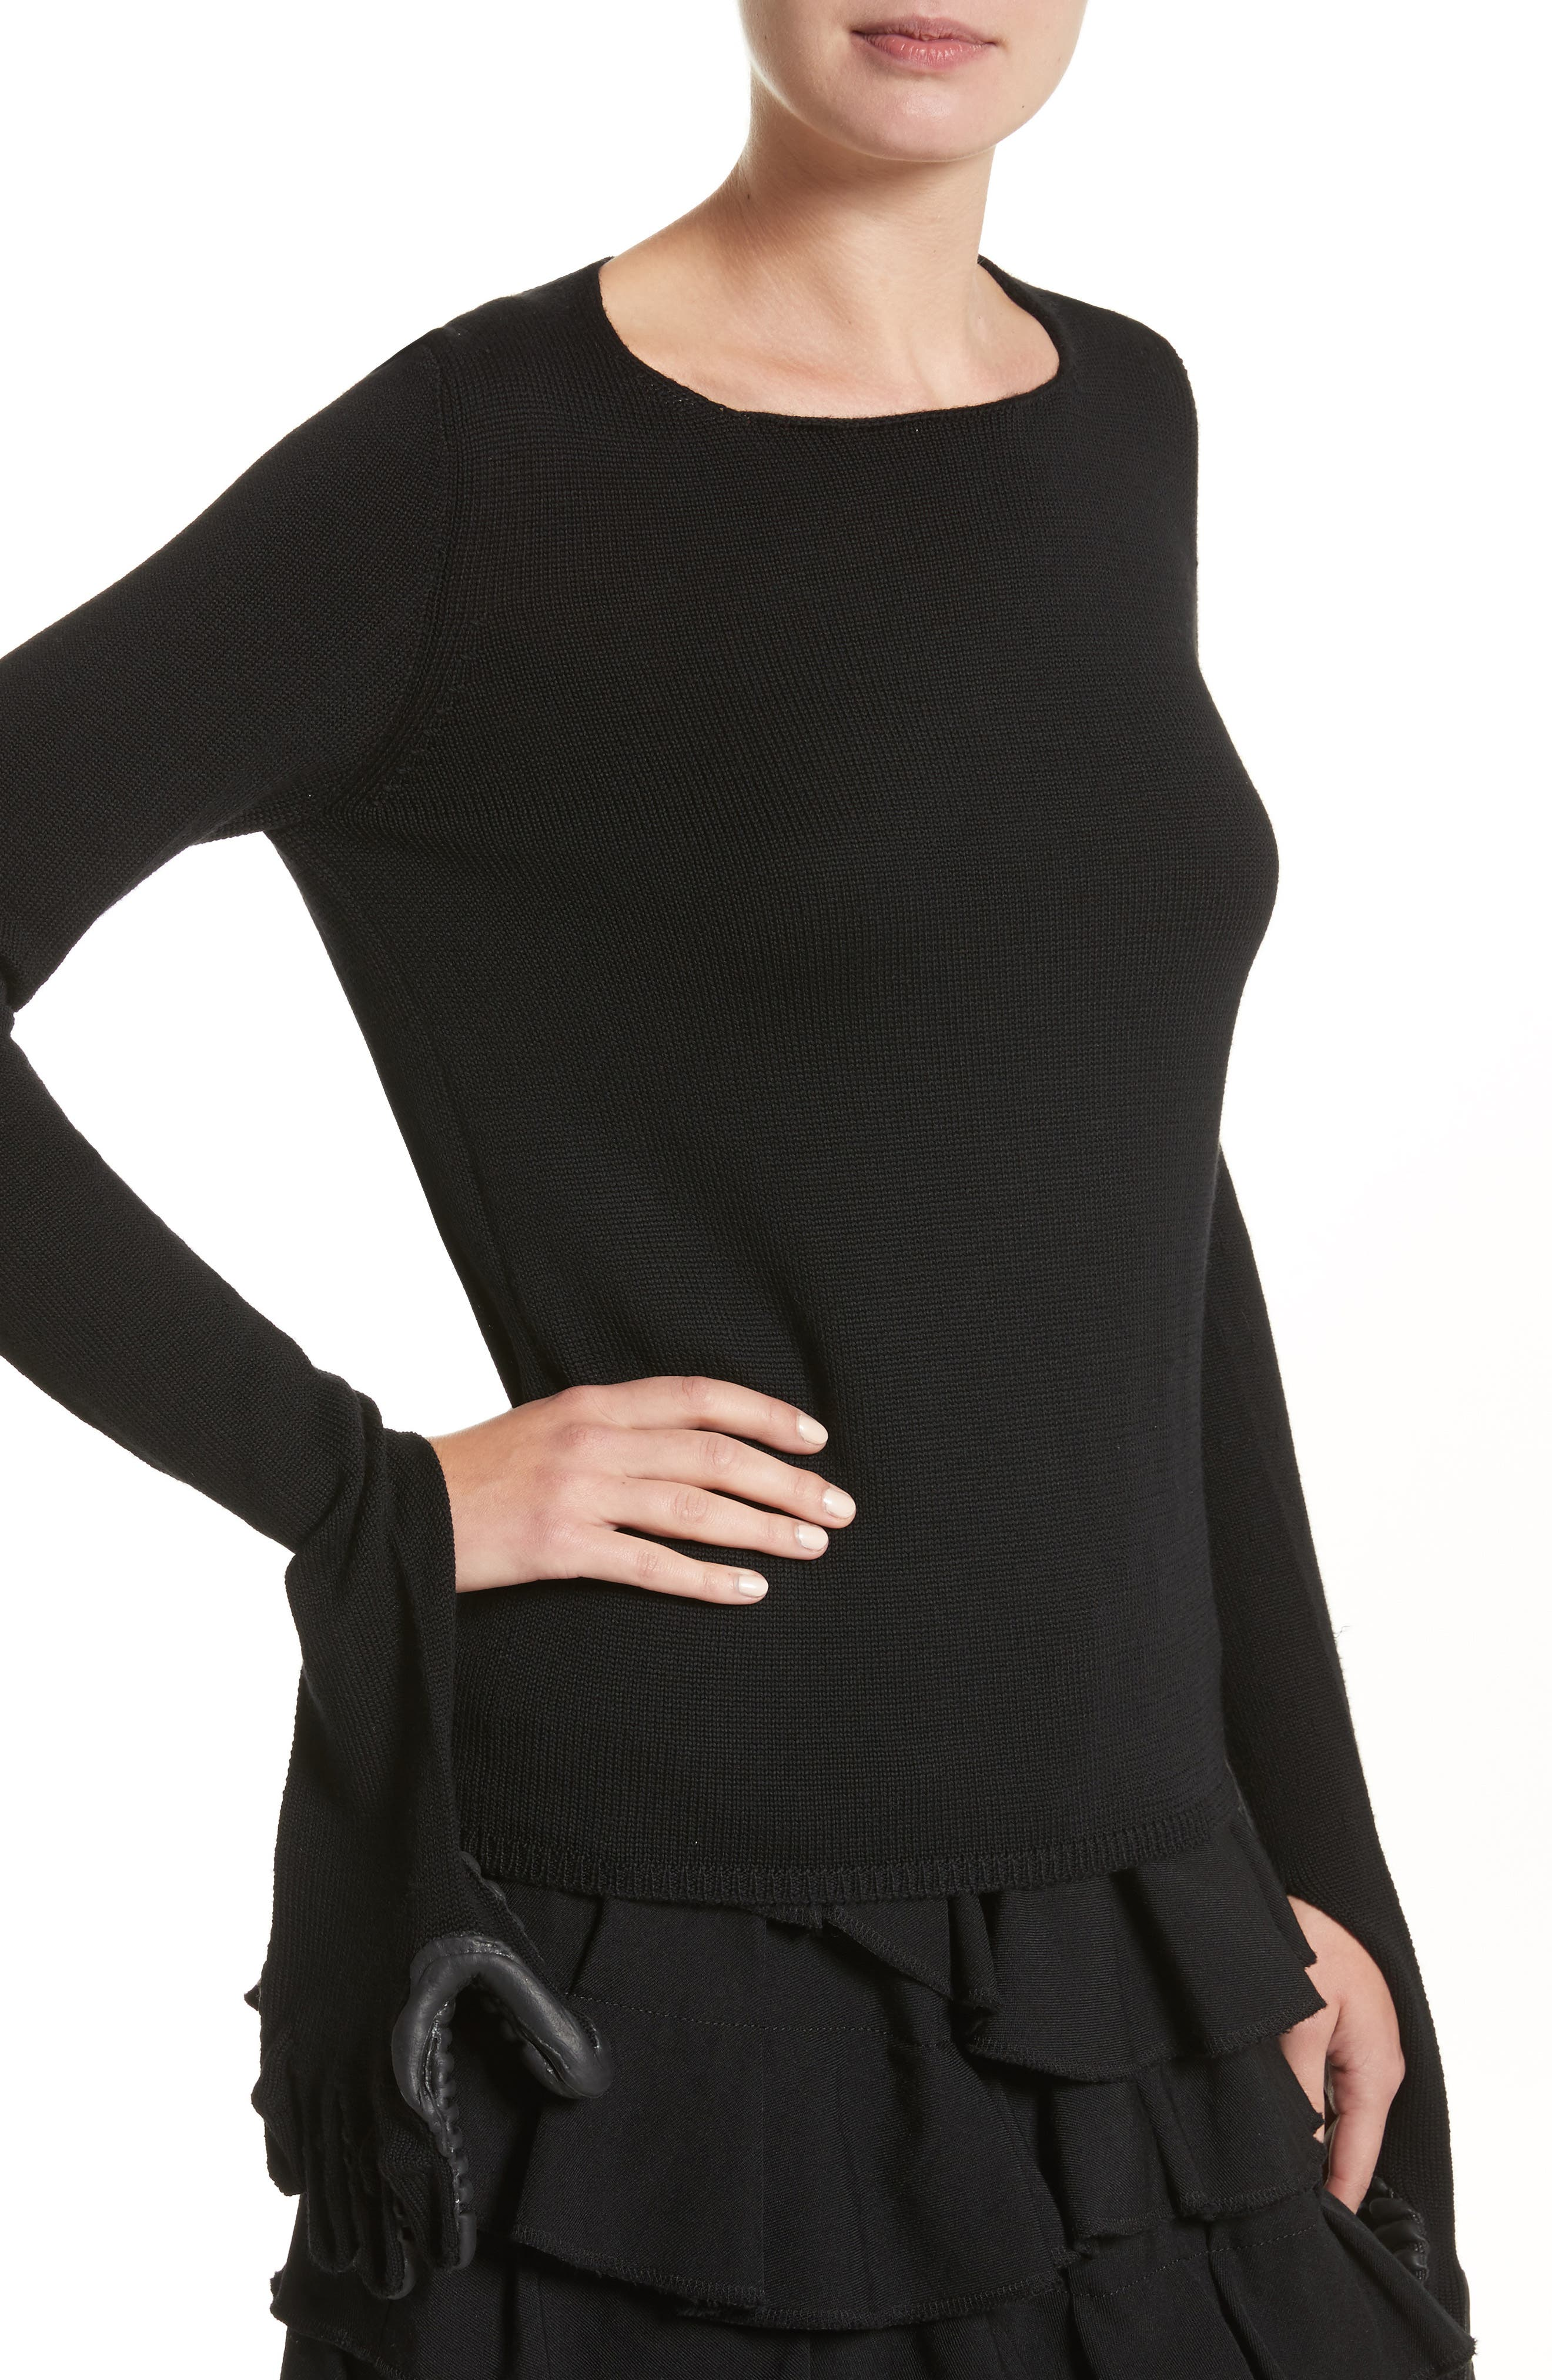 Wool Sweater with Rubber Gloves,                             Alternate thumbnail 4, color,                             003